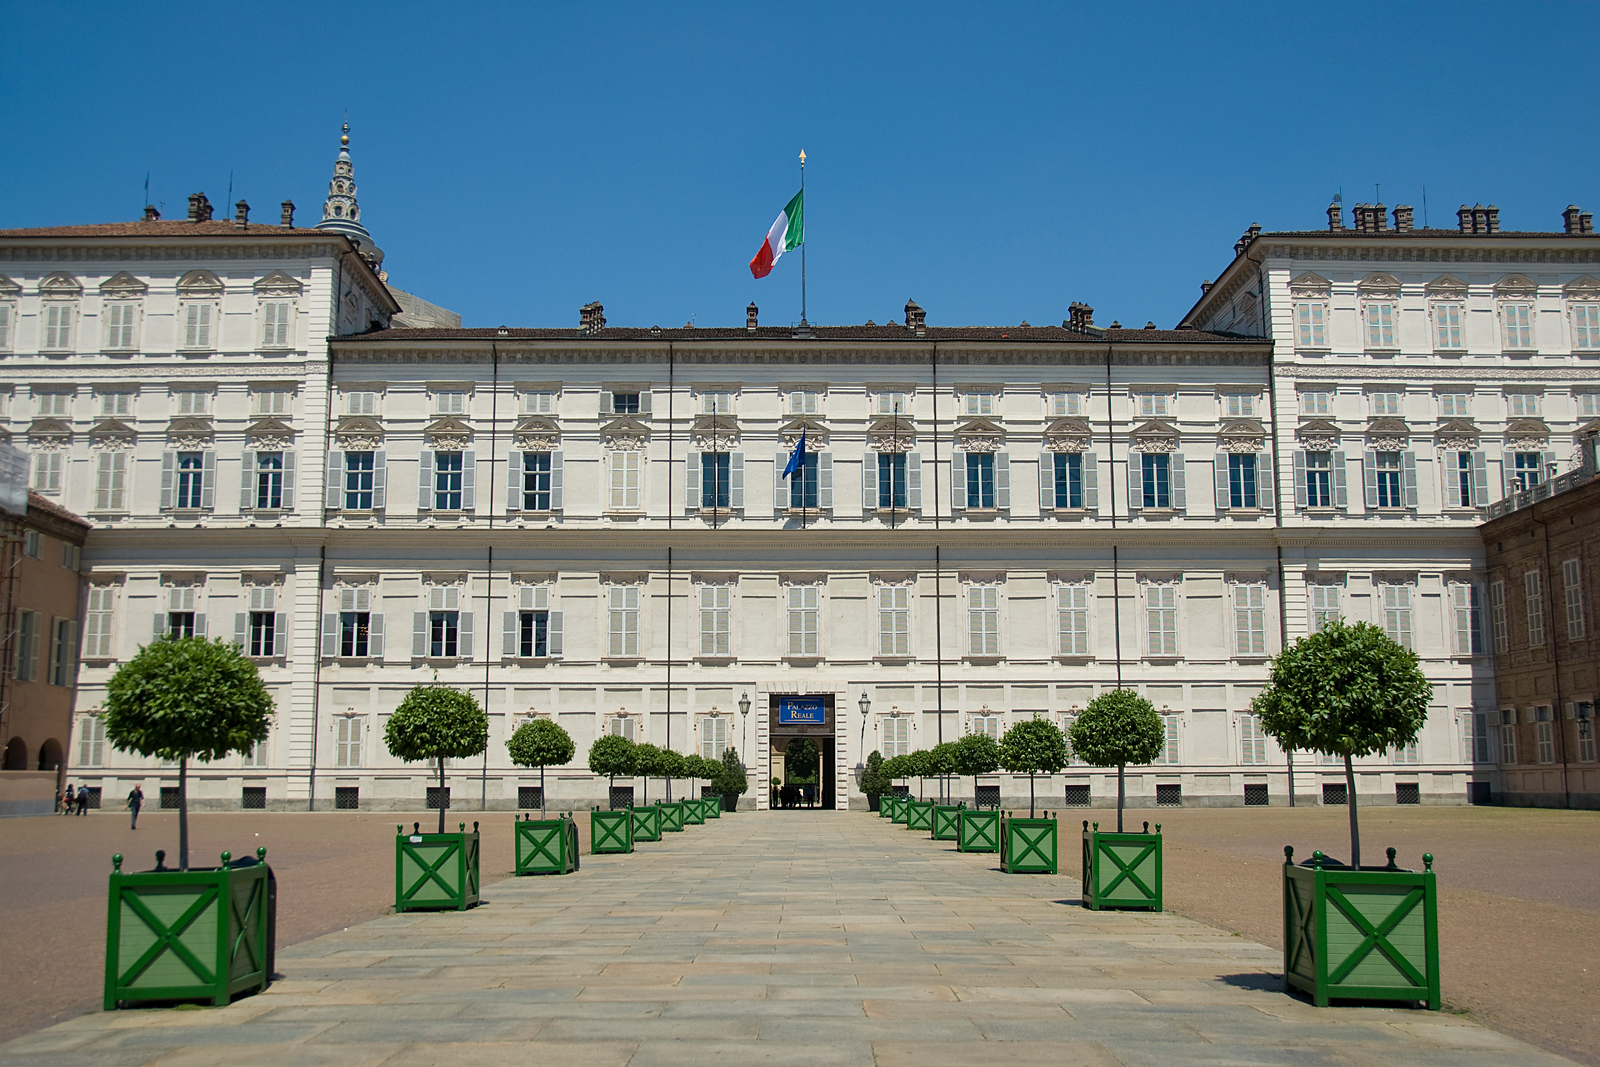 Residences of the Royal House of Savoy - UNESCO World Heritage Site